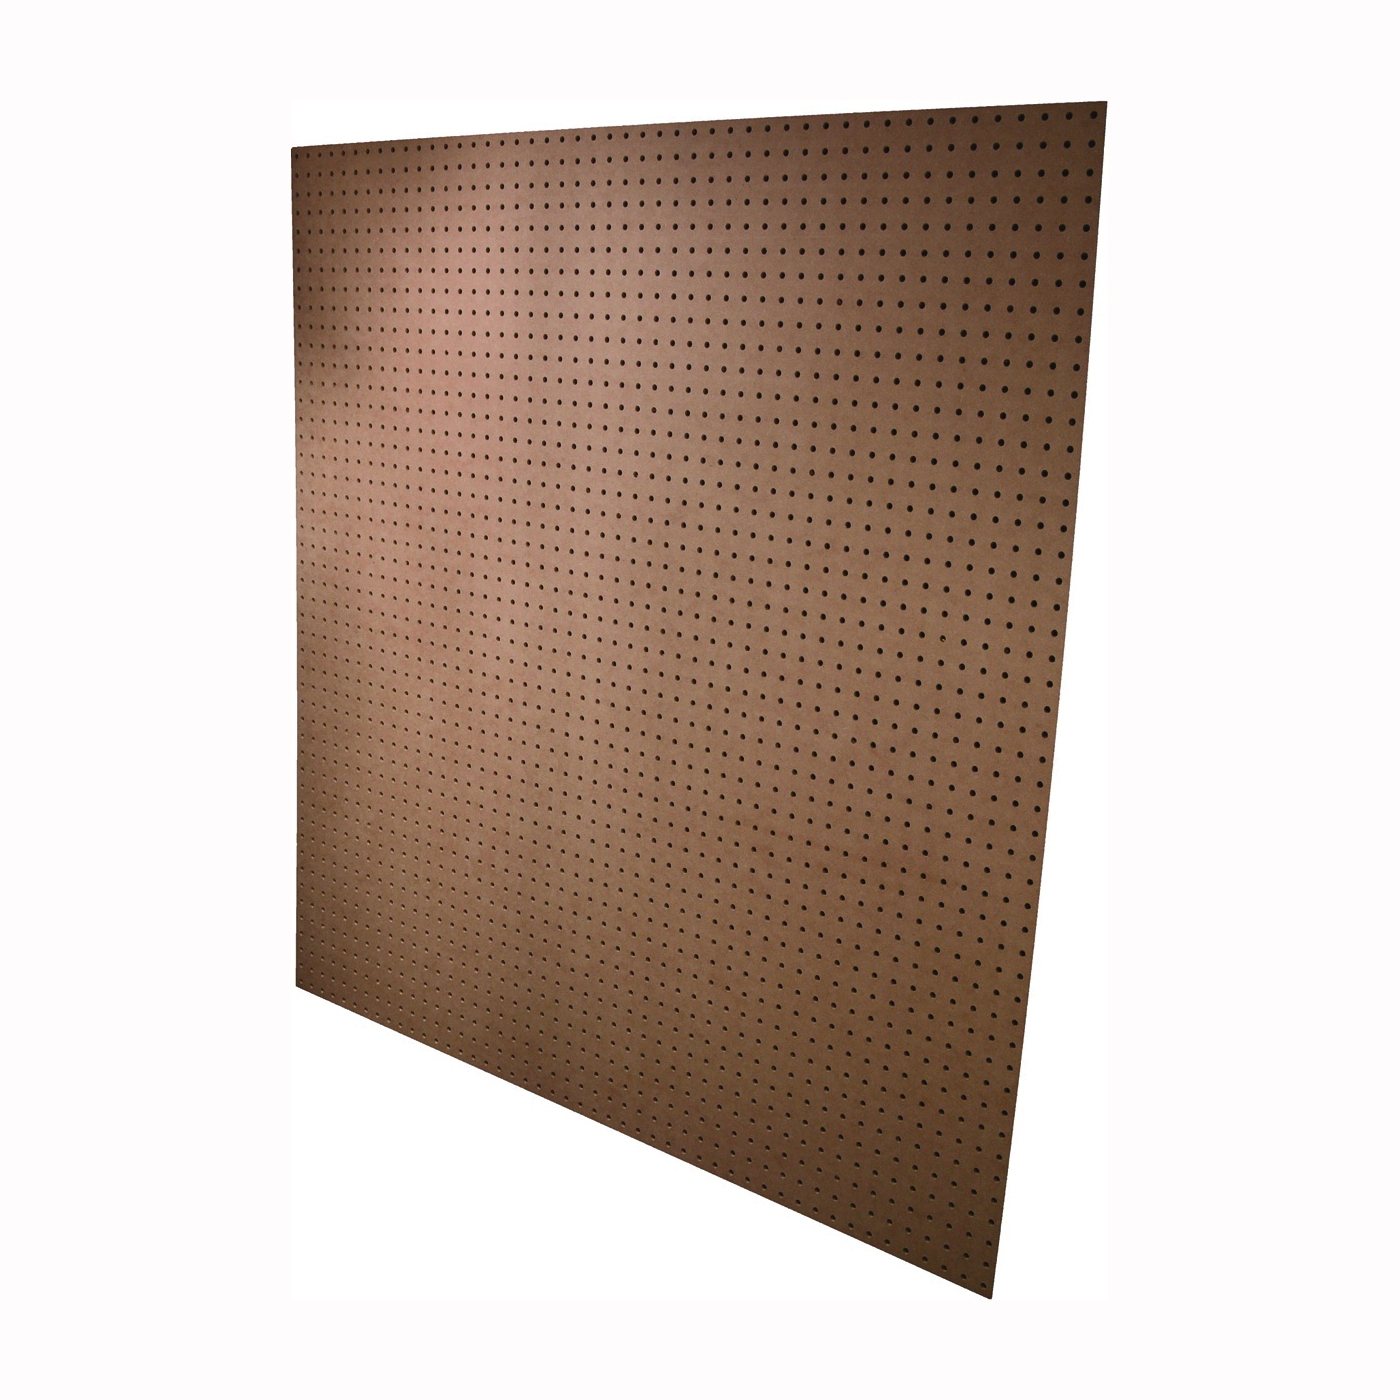 Picture of ALEXANDRIA Moulding PG002-6H048C Standard Perforated Hardboard, 4 ft OAW, 4 ft OAH, Plywood